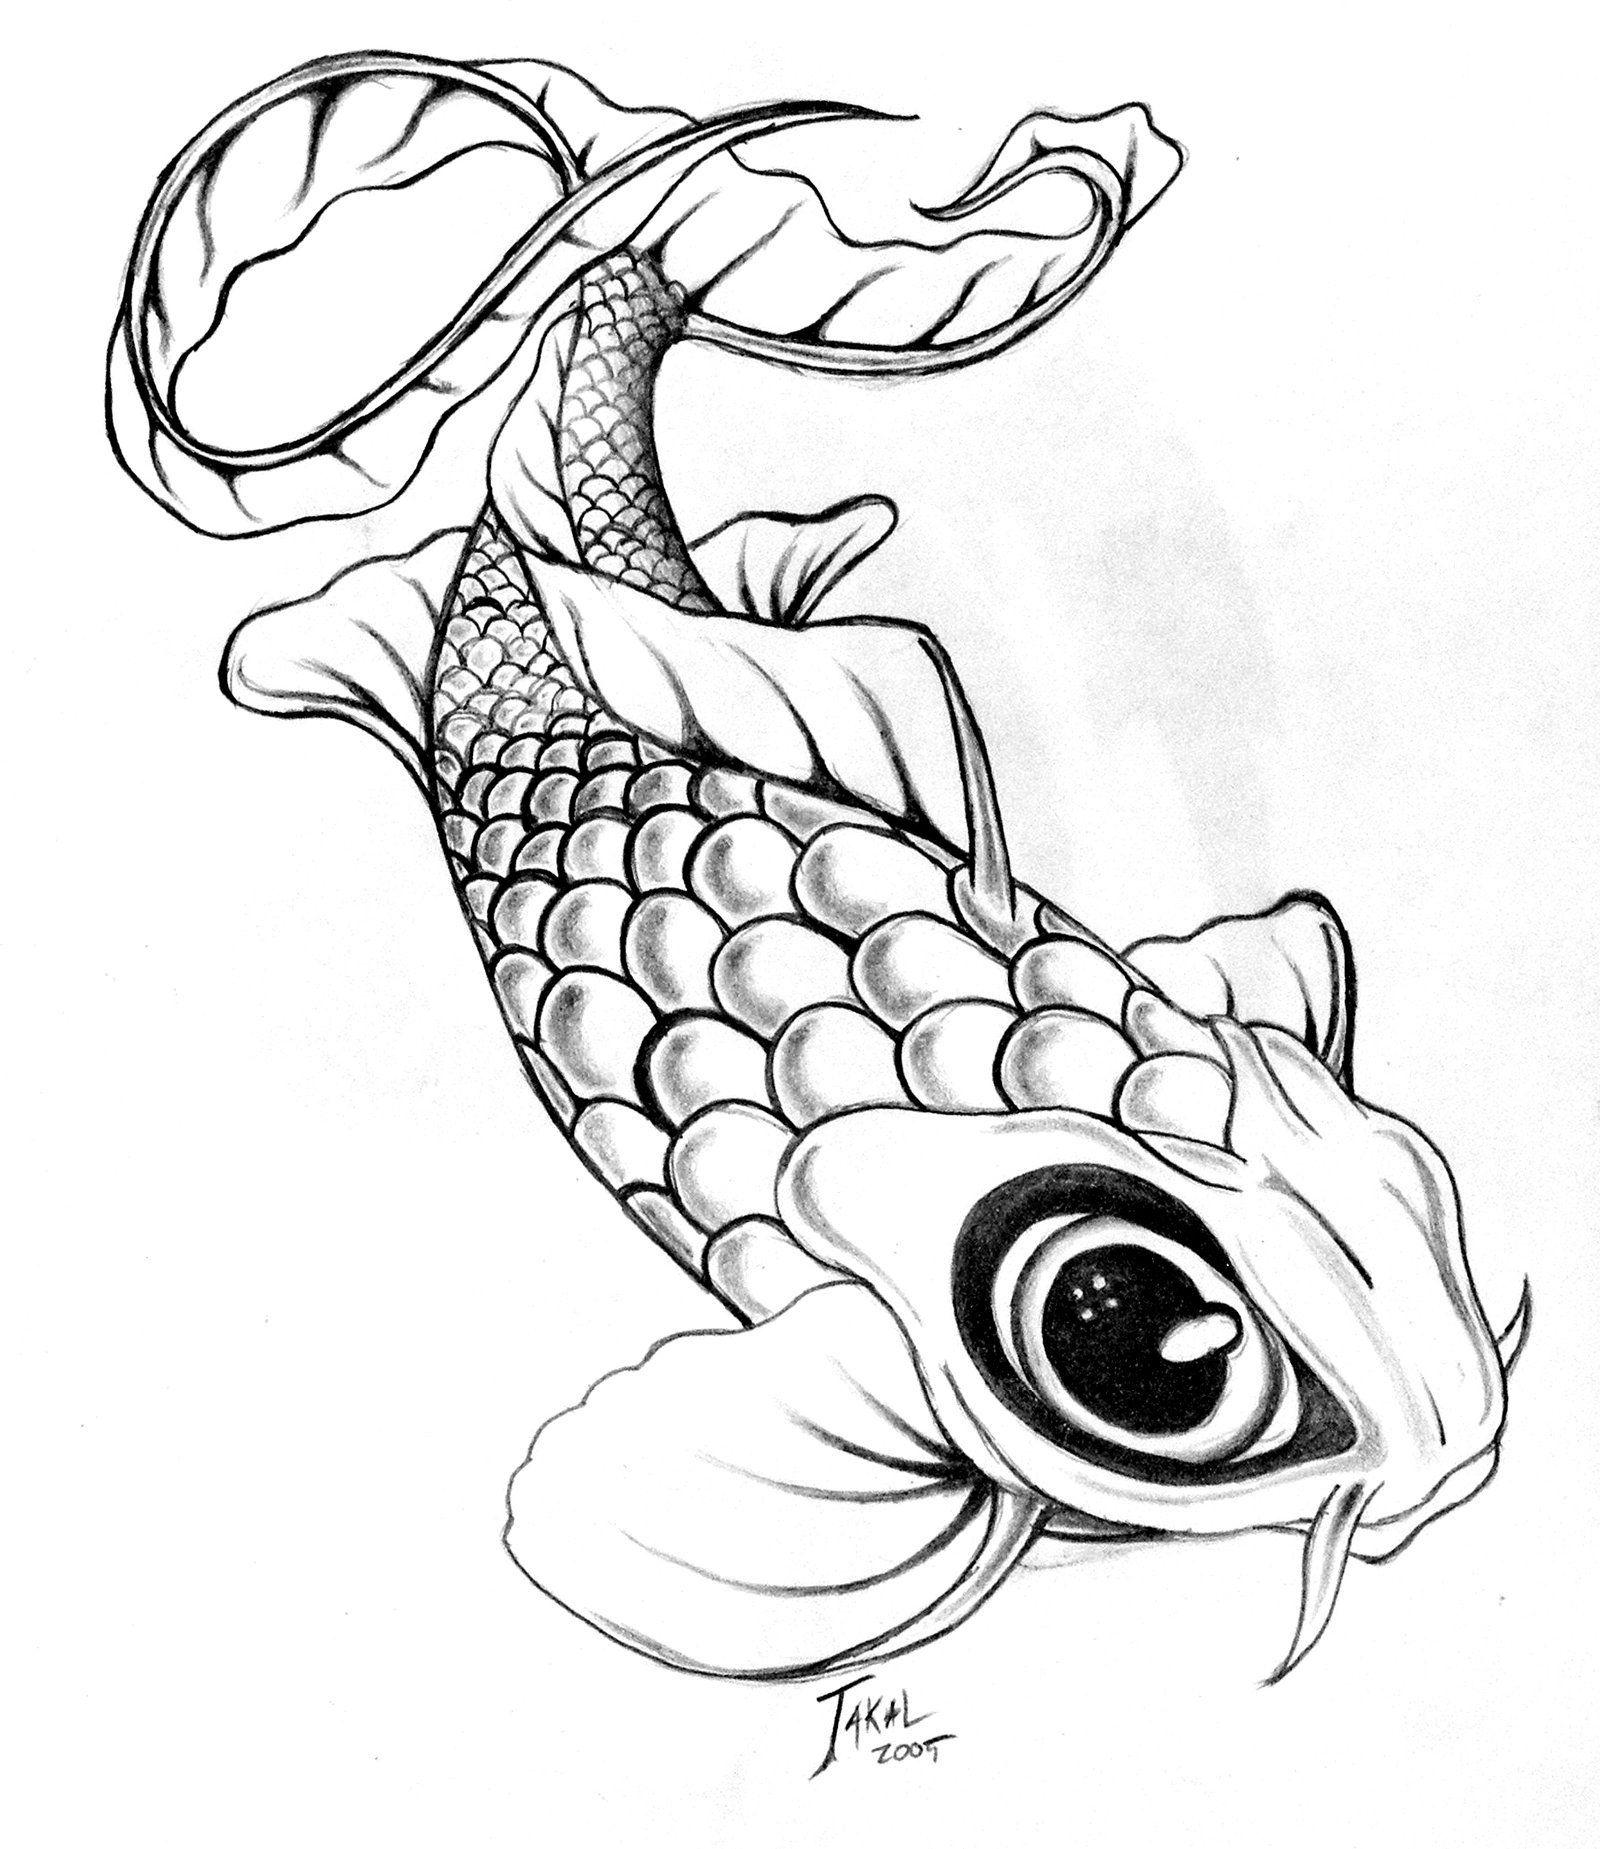 Koi tattoo design by Greg the stoic fish came to be